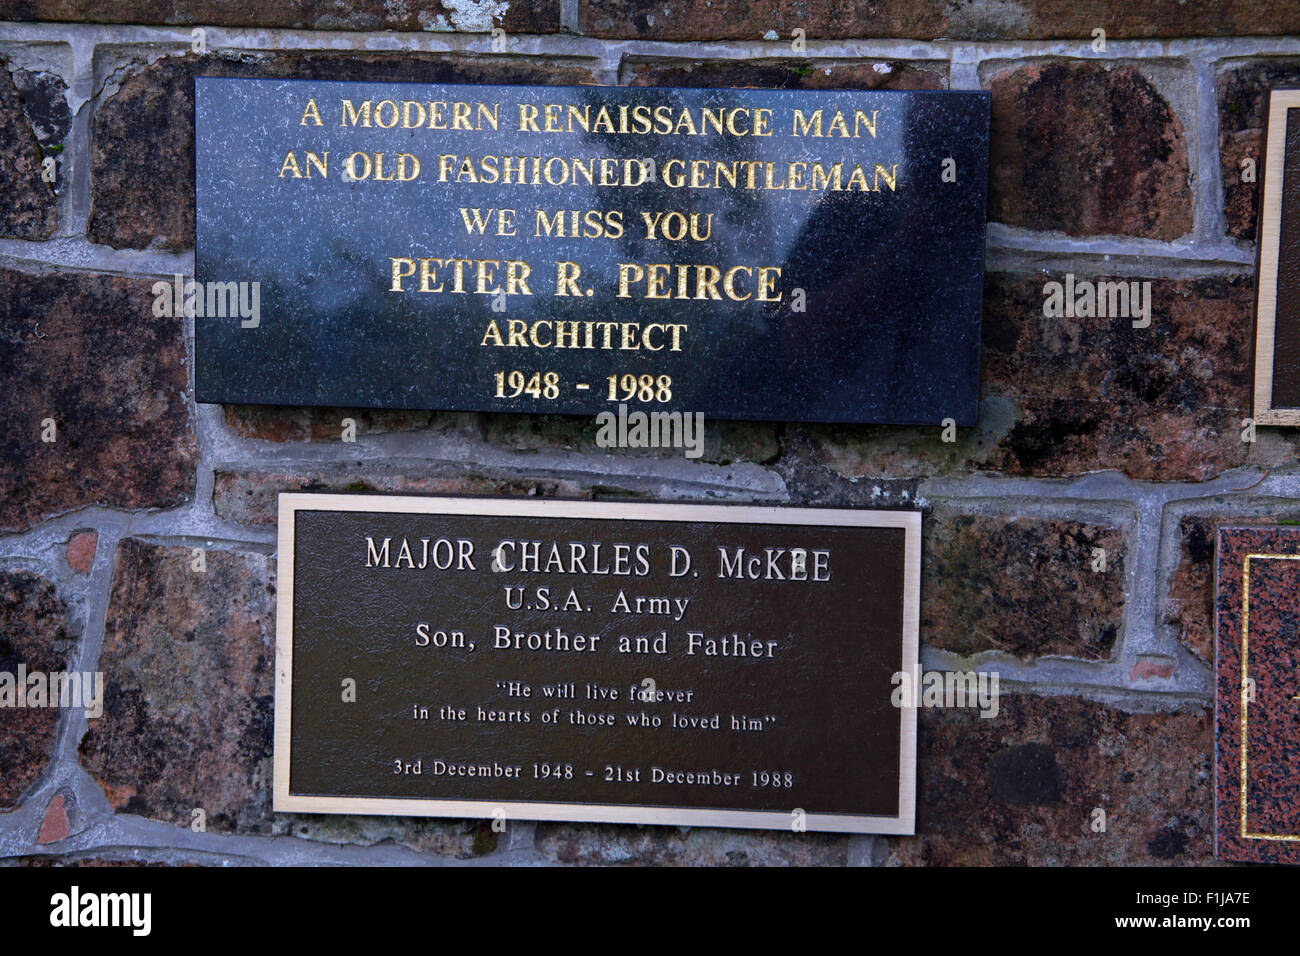 R Peirce Architect Major Charles D McKee USA Army,Scotland,Lodge,Visitors,Centre,DLVC,Trust,Lockerbie,Memorial,Remembrance,Scotland,Victims,Pan,Am,PanAm,flight,103,bomb,bombing,terrorist,December,1988,attack,crash,dead,site,21/12/1988,270,victims,Scottish,Town,conspiracy,blast,Tundergarth,New York,GoTonySmith,Lodge,Visitors,Centre,DLVC,Trust,Lockerbie,Memorial,Scotland,Victims,Pan,Am,PanAm,flight,103,bomb,bombing,terrorist,December,1988,attack,crash,dead,site,21/12/1988,270,victims,Scottish,Town,conspiracy,blast,Tundergarth,Room,garden,of,Dryfesdale,Cemetery,news,Cultural,understanding,remembering,innocent,transatlantic,Frankfurt,Detroit,Libyan,Libya,Colonel Muammar Gaddafi,civil,case,compensation,terrorism,PA103,30,30years,years,Syracuse,University,SU,family,collections,Story,Archive,Archives,40,35,Timeline,saga,disaster,air,Scholars,program,programs,remembrance,Clipper Maid of the Seas,N739PA,Boeing,727,plane,aircraft,Scotland,UK,United Kingdom,GB,Great Britain,resting,place,Buy Pictures of,Buy Images Of,New York,al megrahi,30 Years